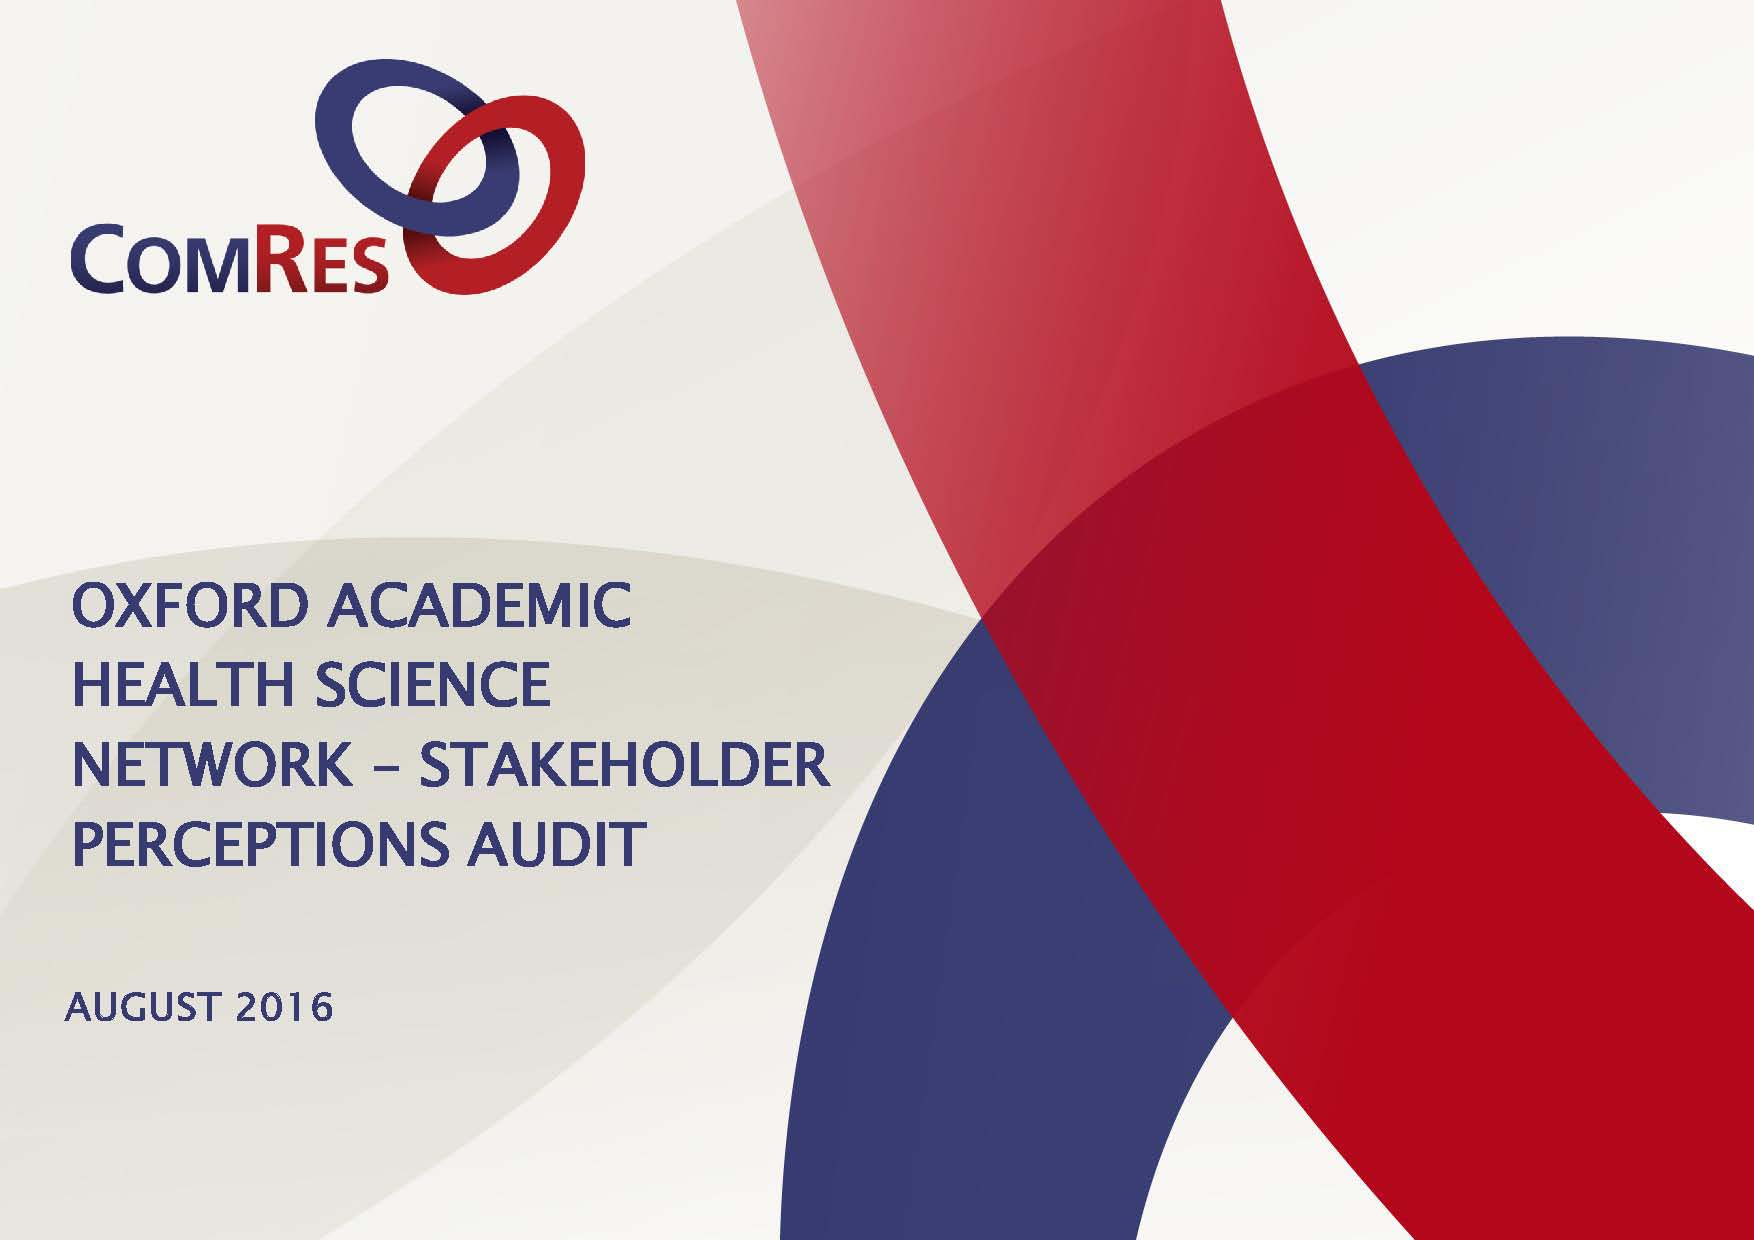 Oxford AHSN Stakeholder perceptions audit by ComRes